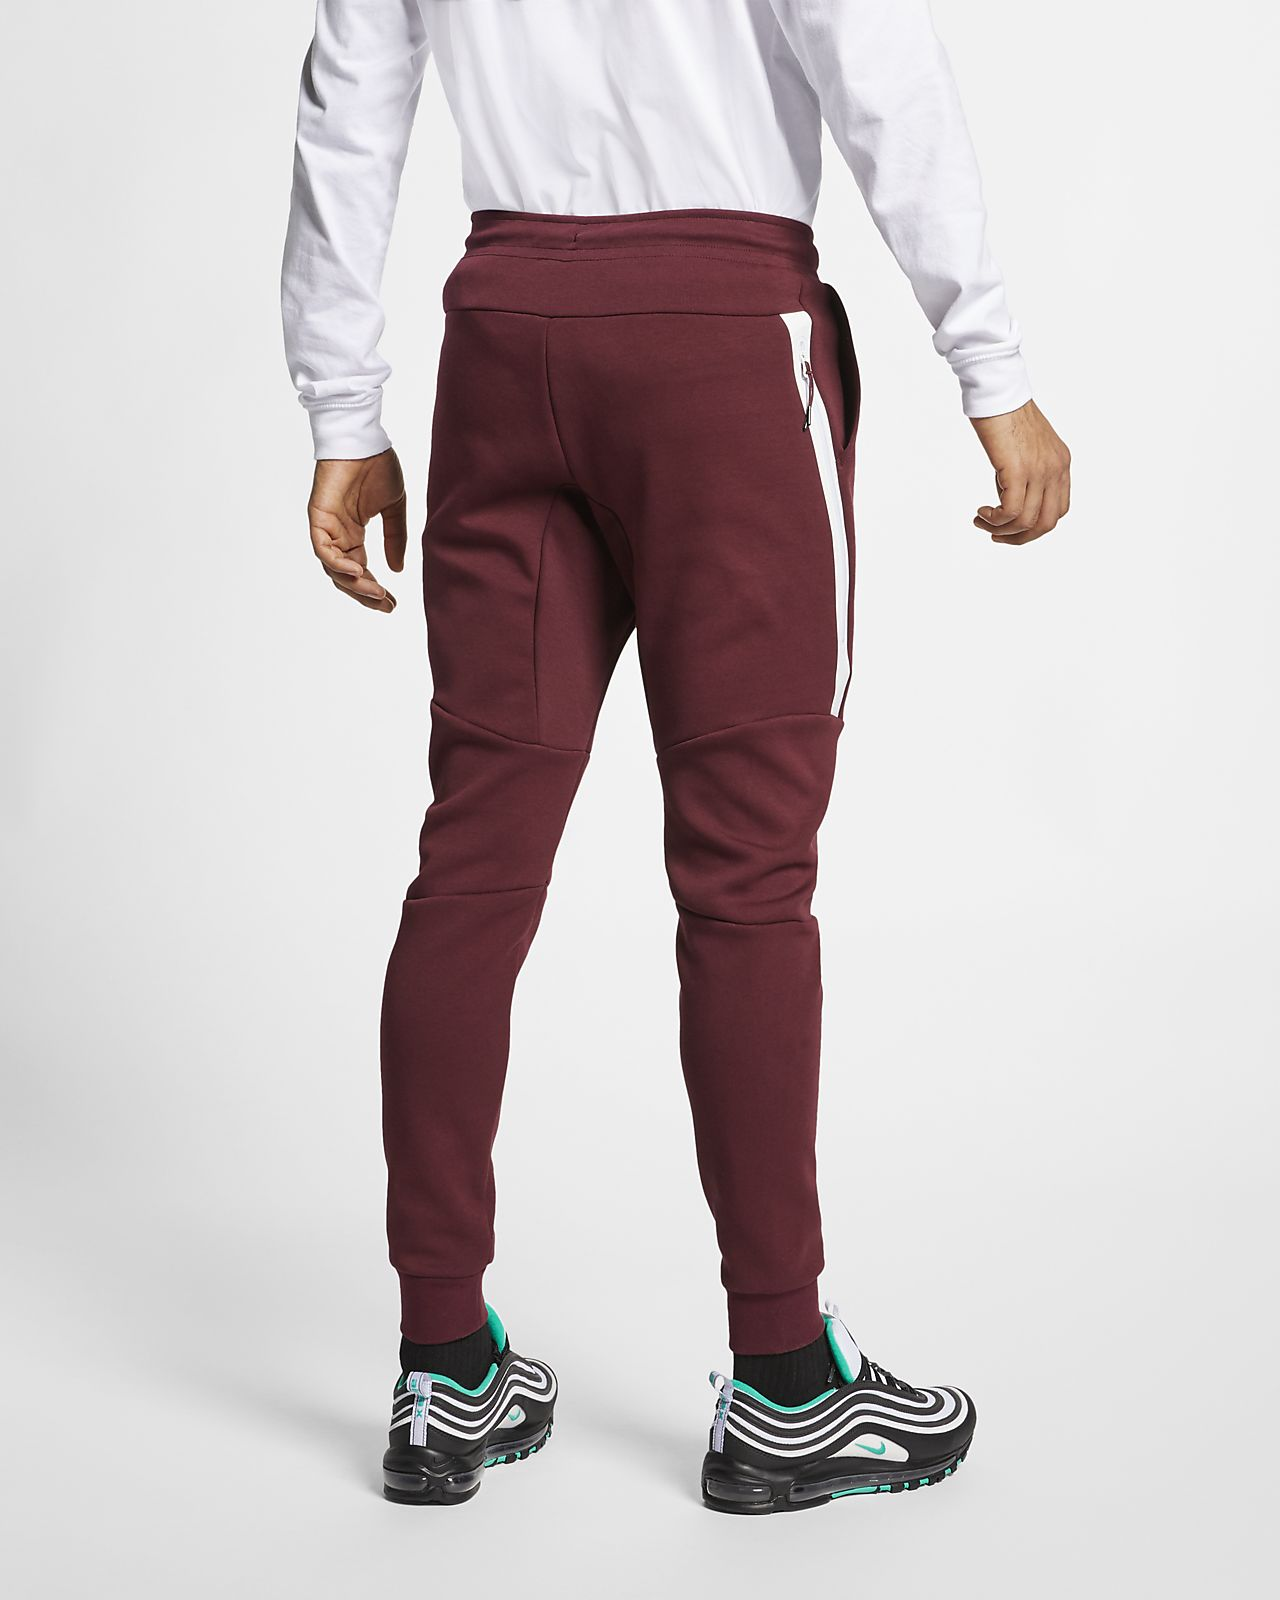 03b2326a9e63 Nike Sportswear Tech Fleece Men s Joggers. Nike.com CA